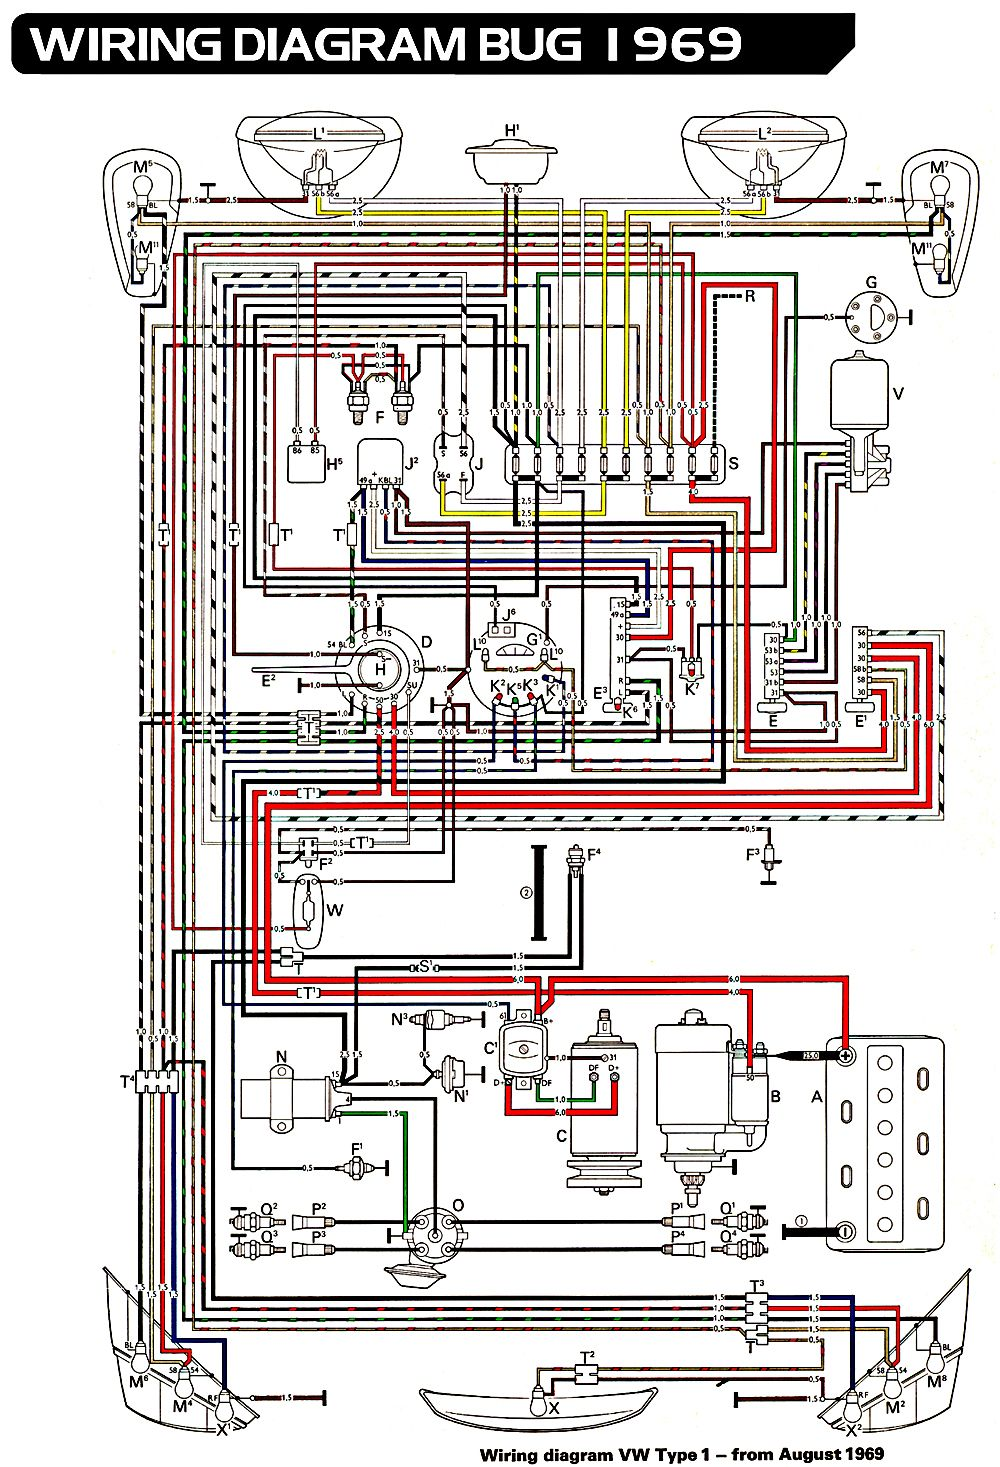 6d75c15875479254f26a32a8499d9044 volkswagen beetle wiring diagram 1966 vw beetle wiring vw wiring diagrams at readyjetset.co